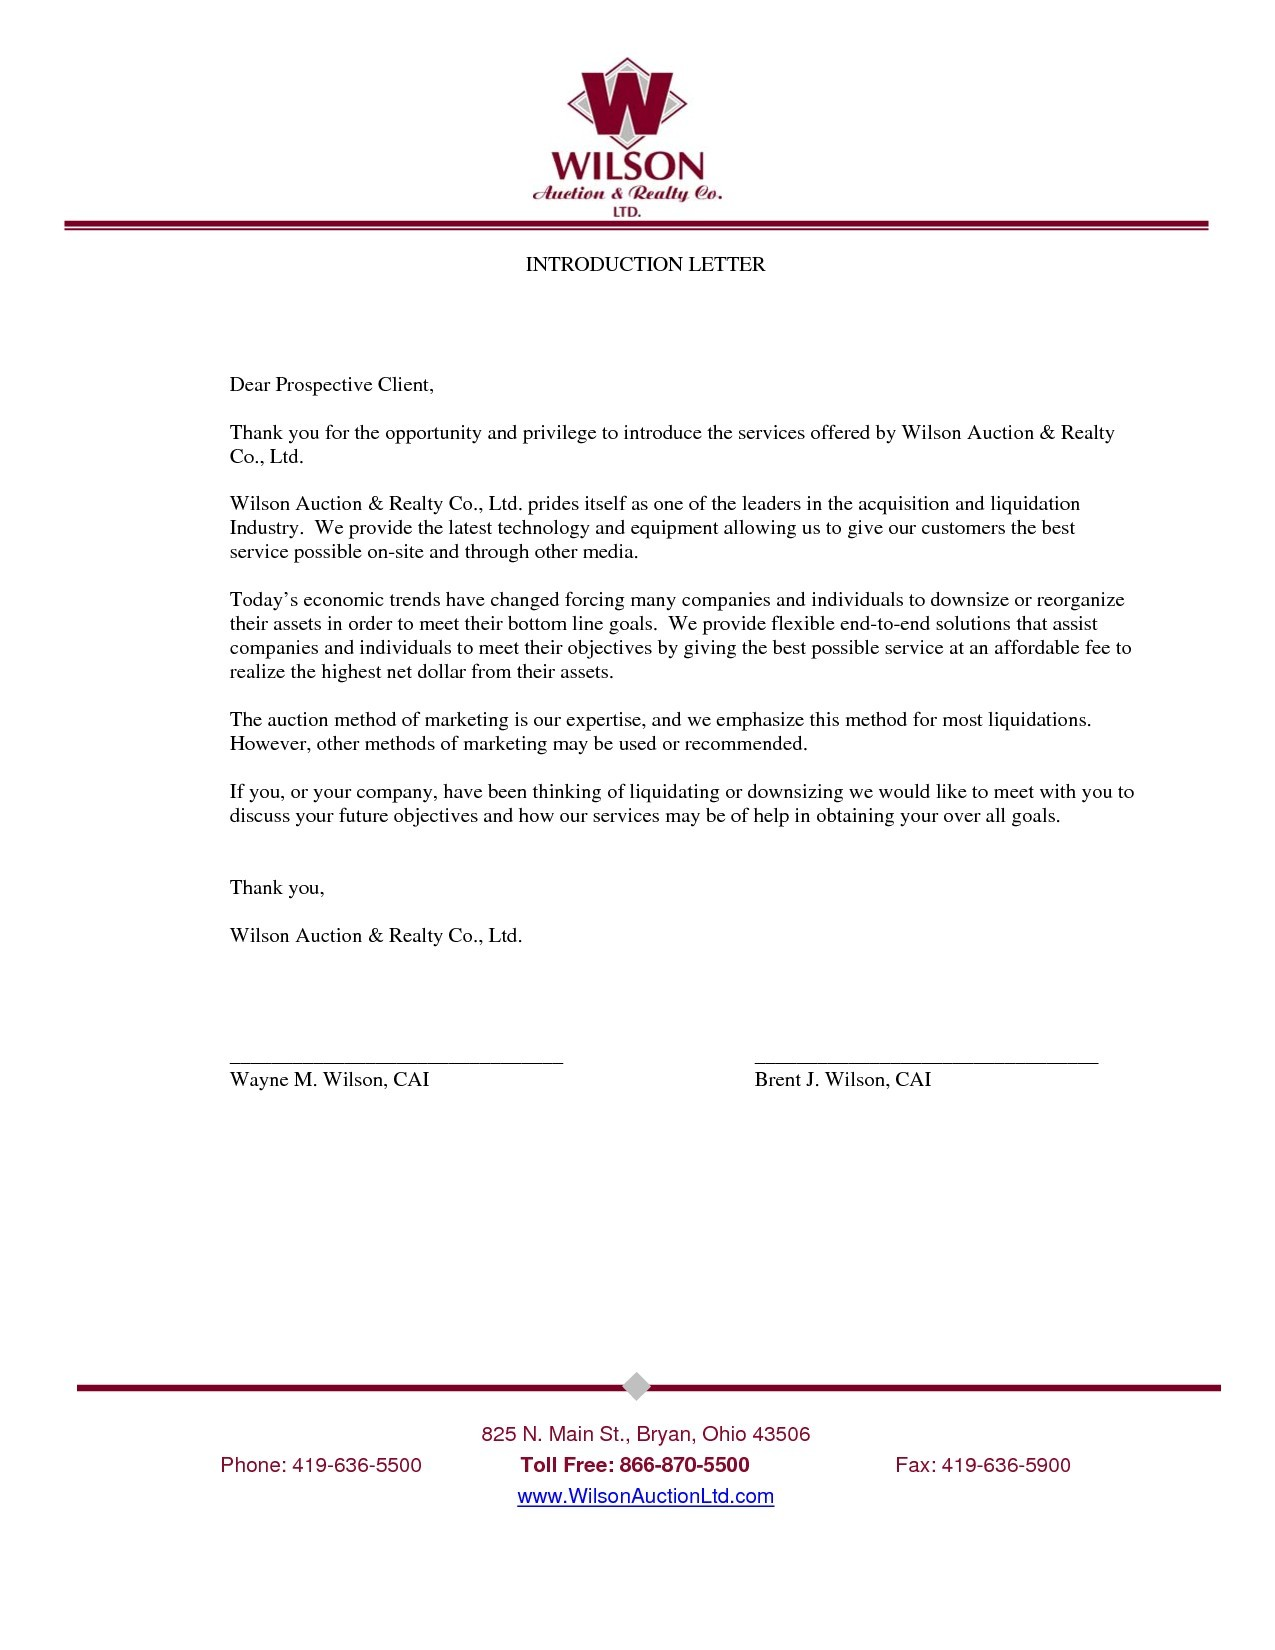 Template Letter Introduction Business Refrence Introduction Letter